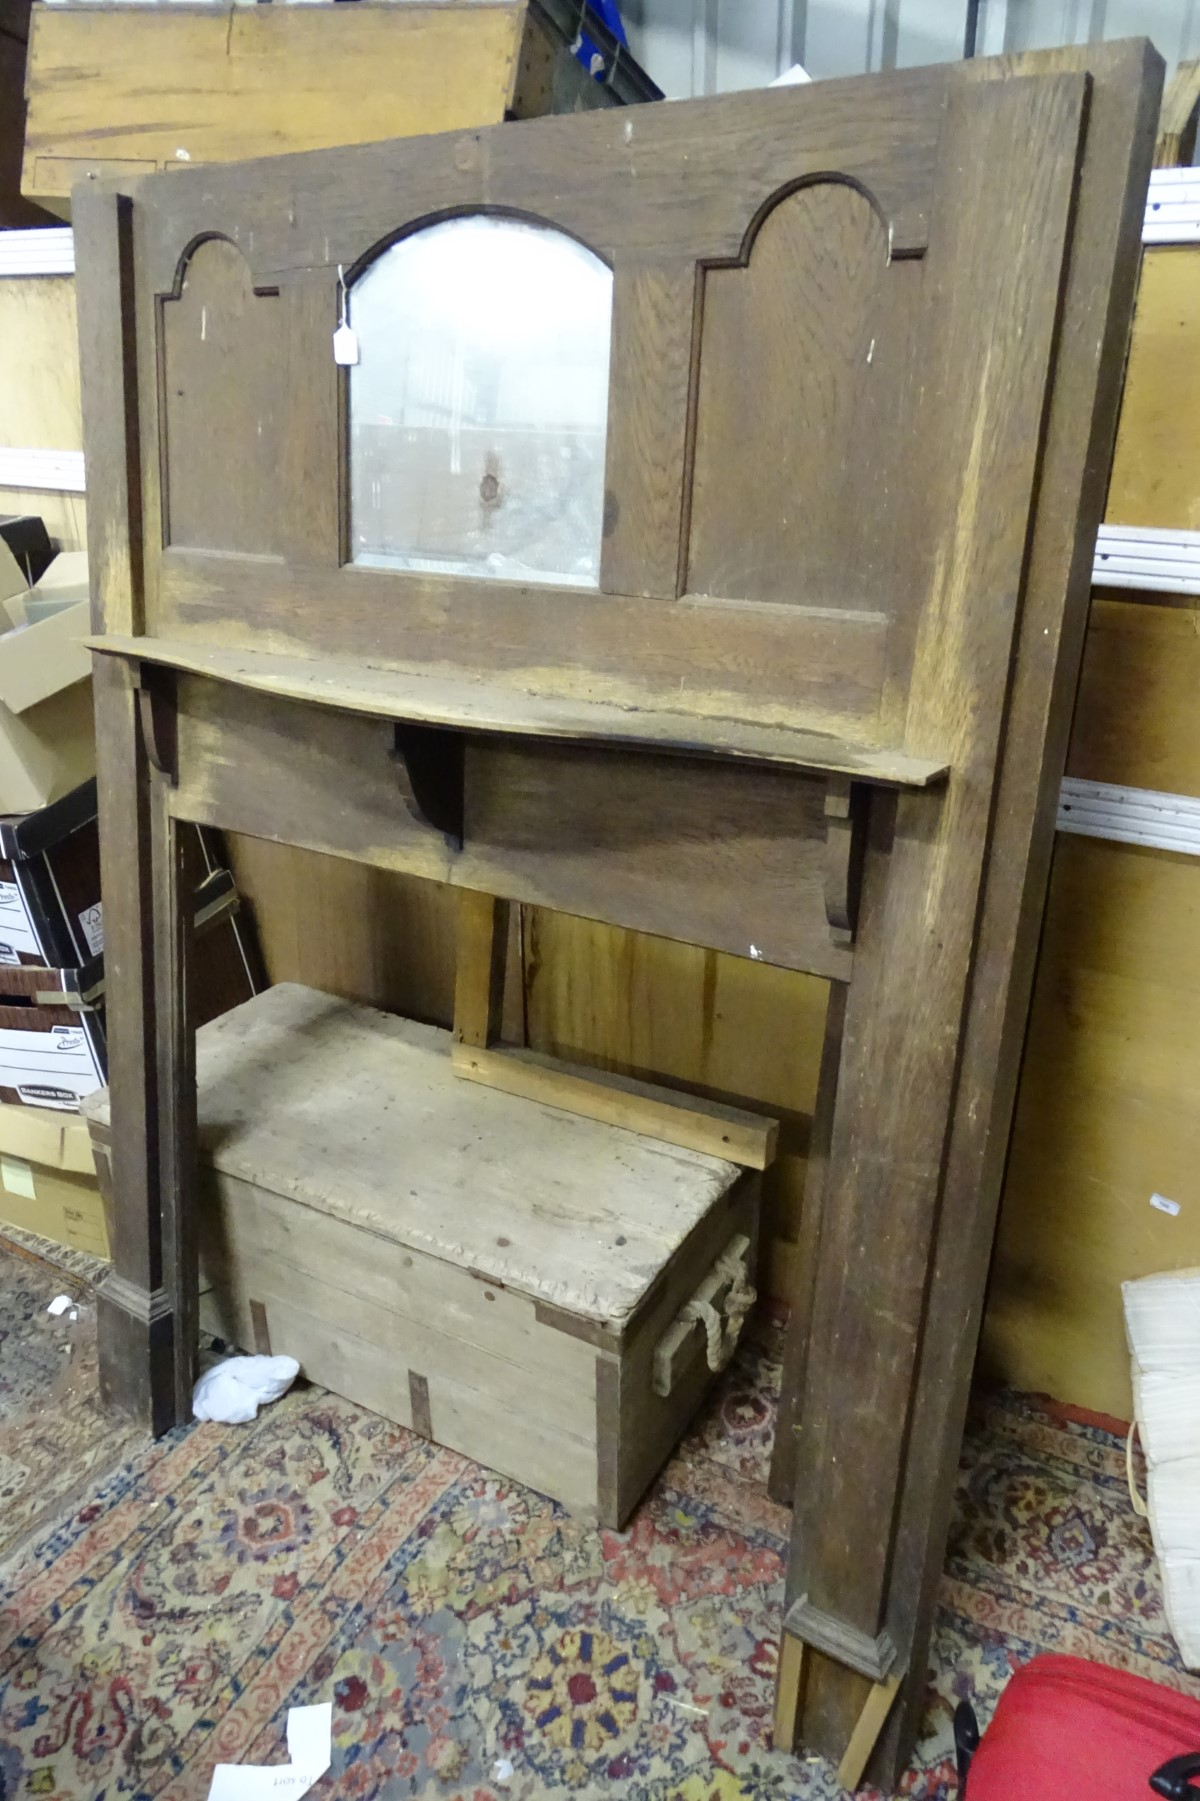 Lot 52 - An Edwardian Fire surround CONDITION: Please Note - we do not make reference to the